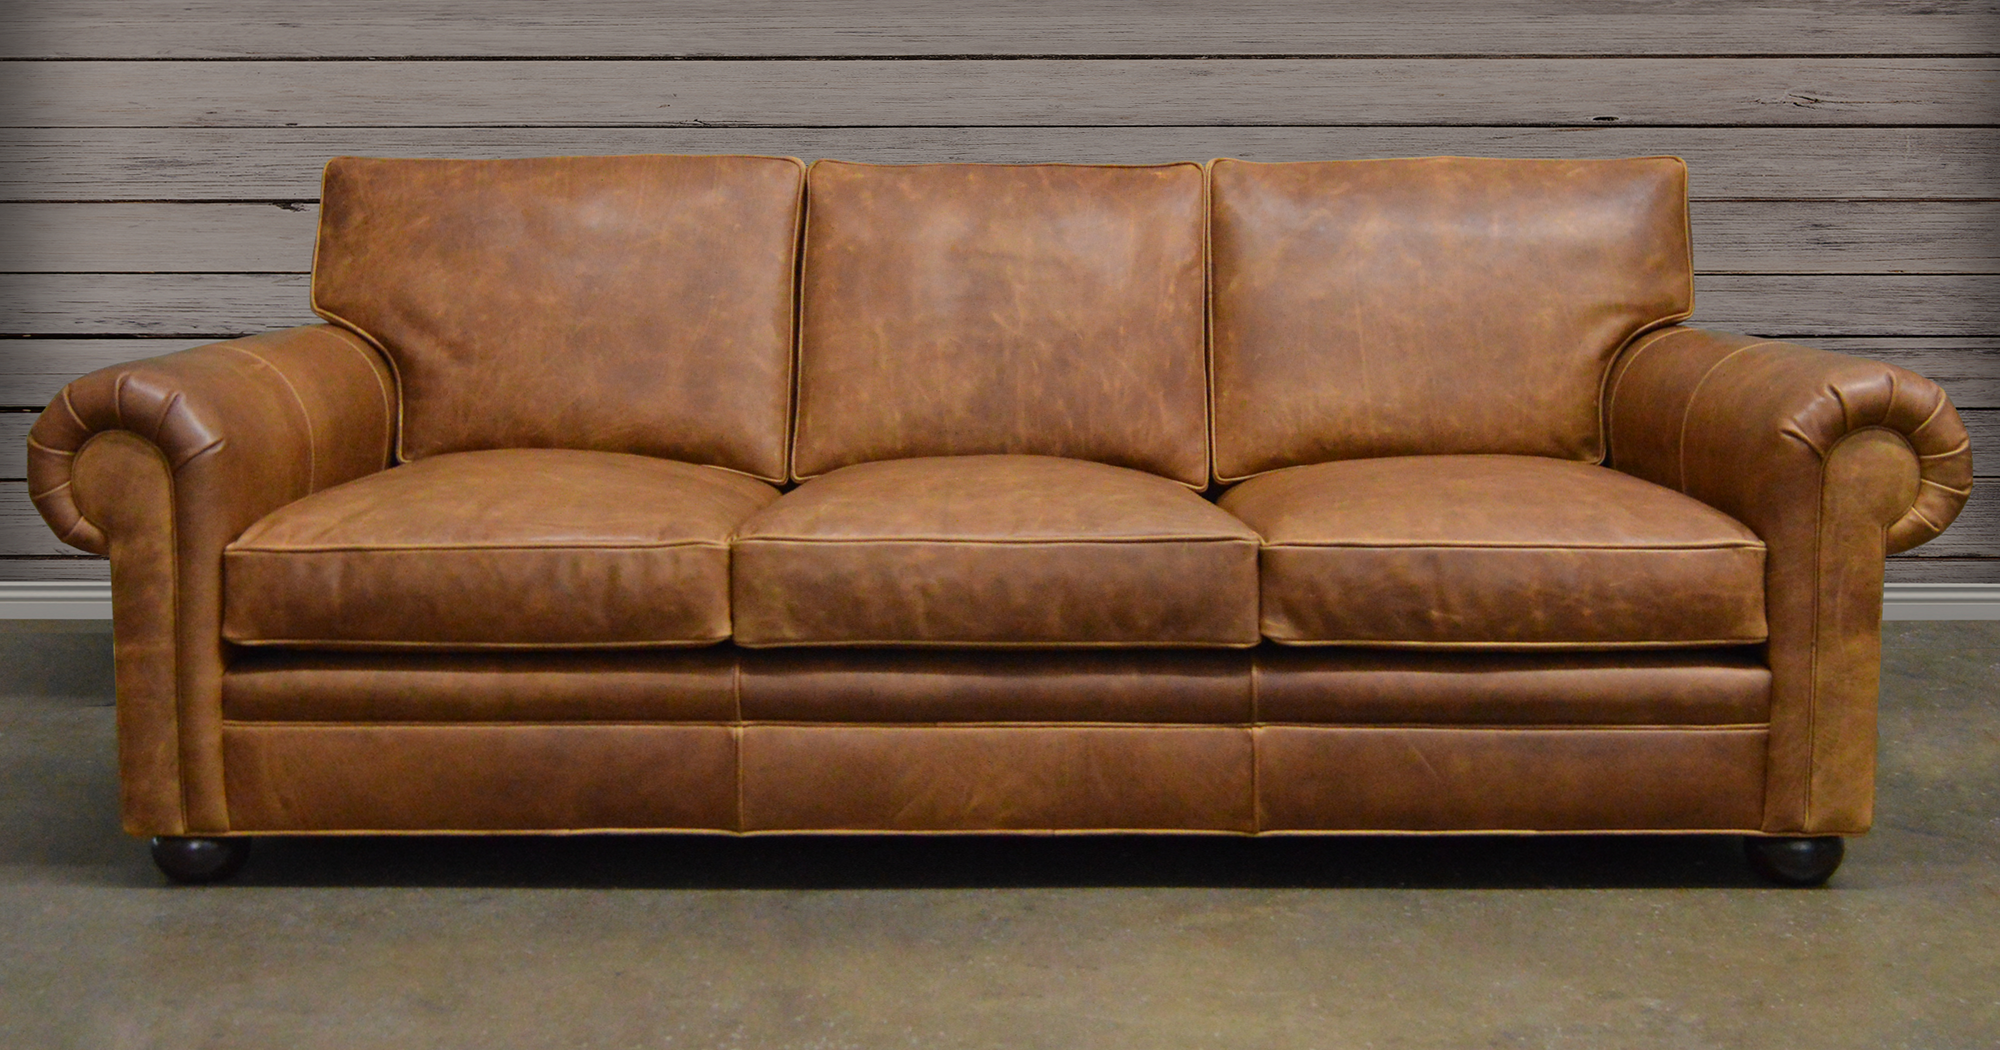 American made leather furniture leather sofas leather for Furniture leather sofa